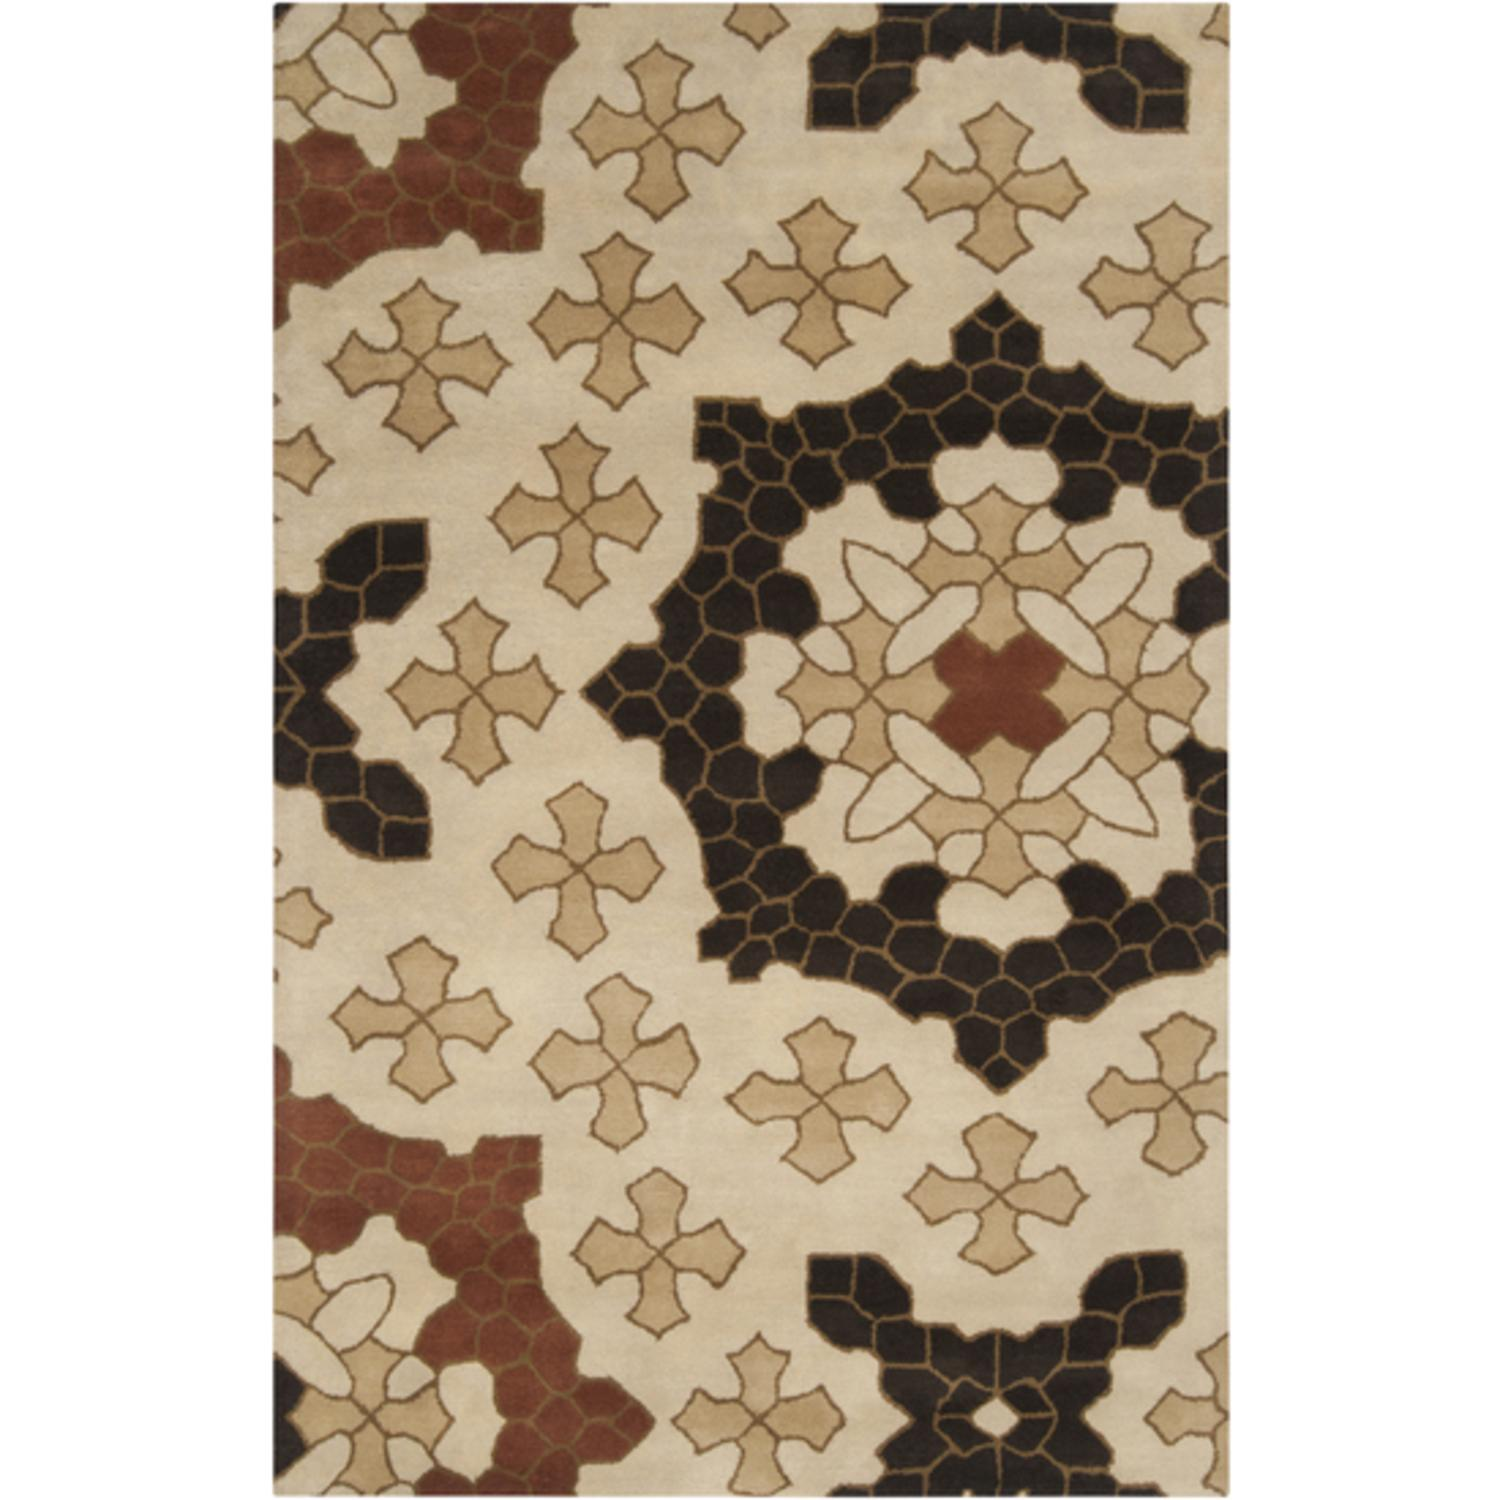 2' x 3' Floral Puzzle Pieces Dark Brown and Parchment Wool Area Throw Rug